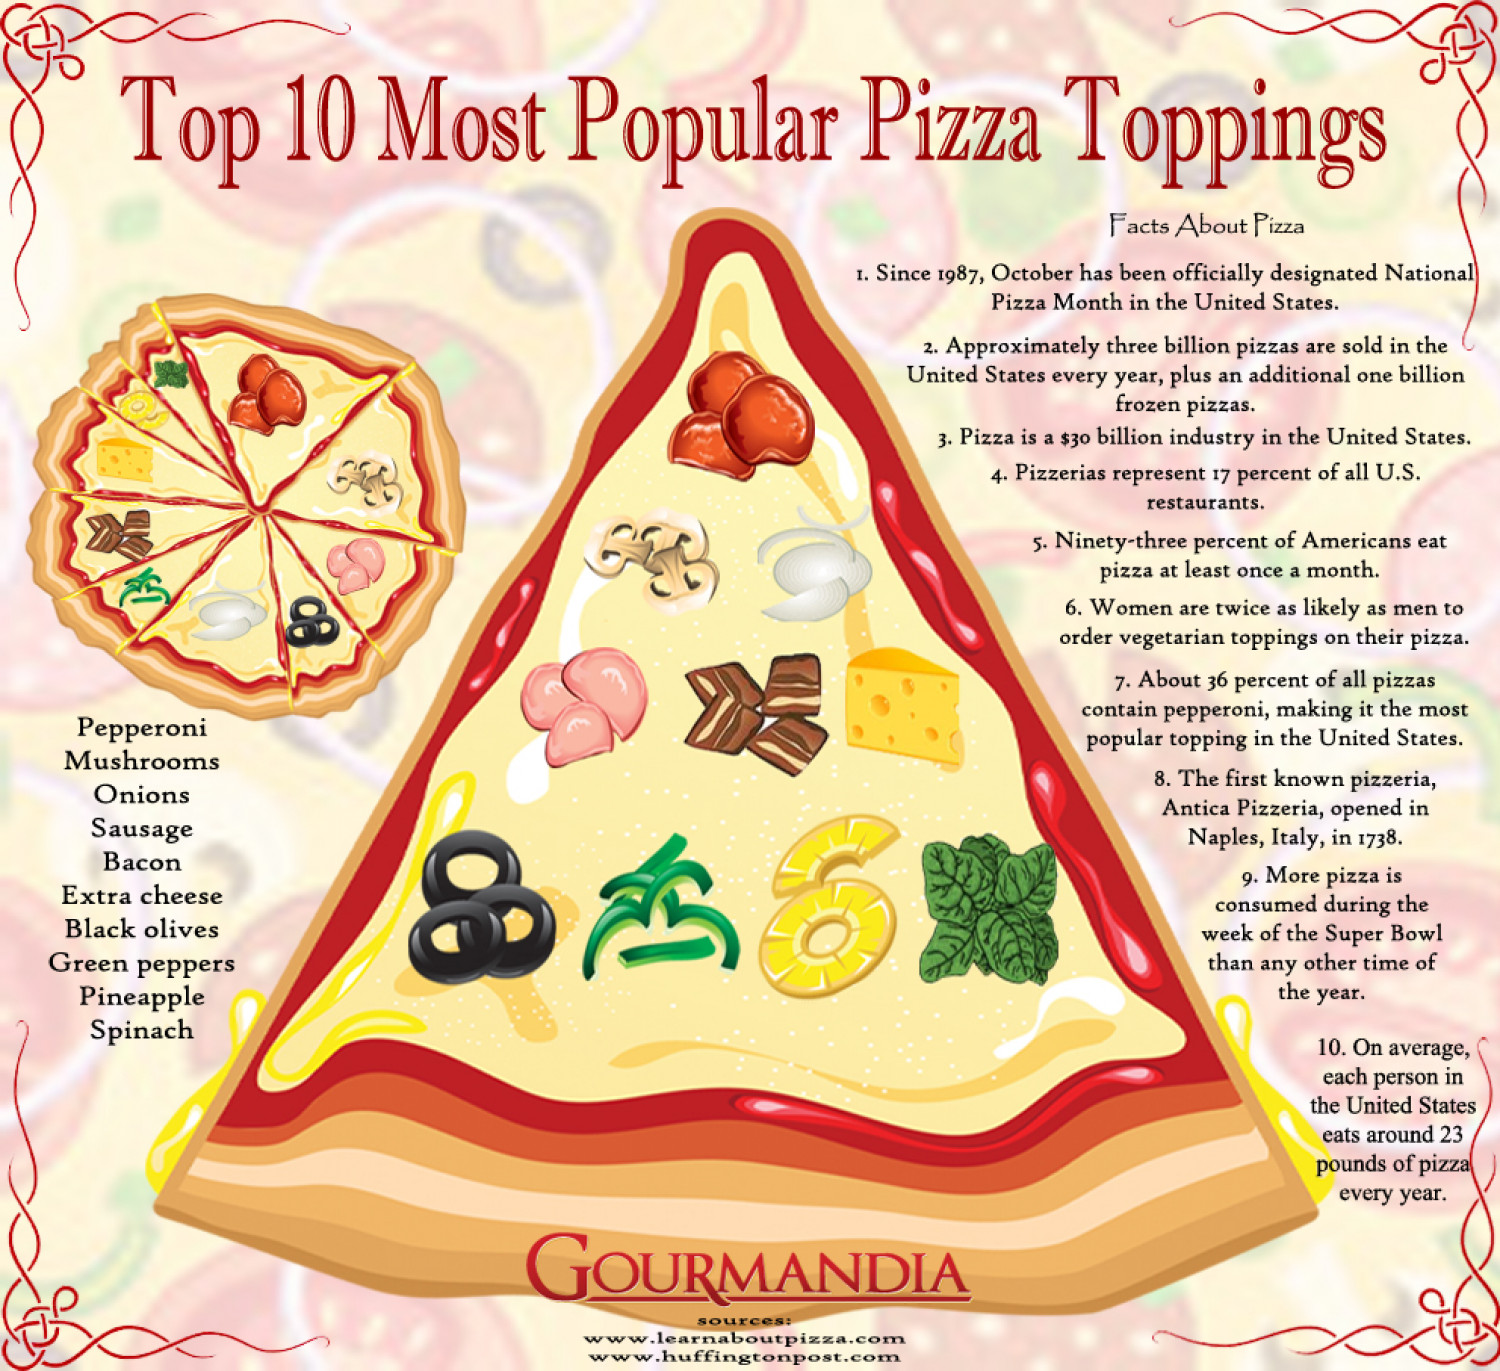 Top 10 Most Popular Pizza Toppings Infographic